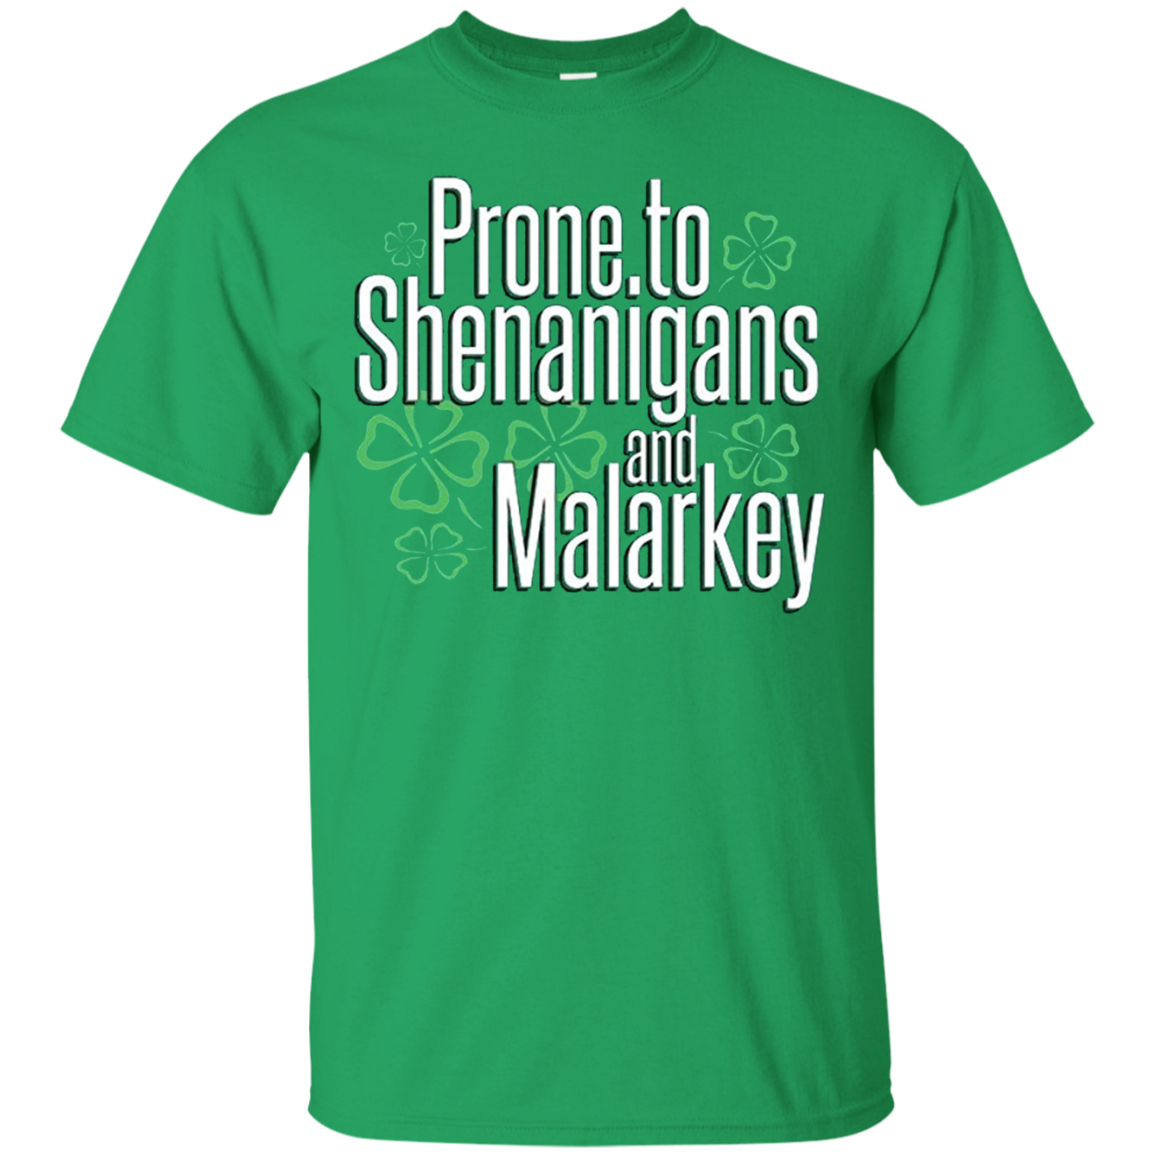 Saint Patrick's Day Prone To Shenanigans and Malarkey T shirt Hoodie Sweater Men